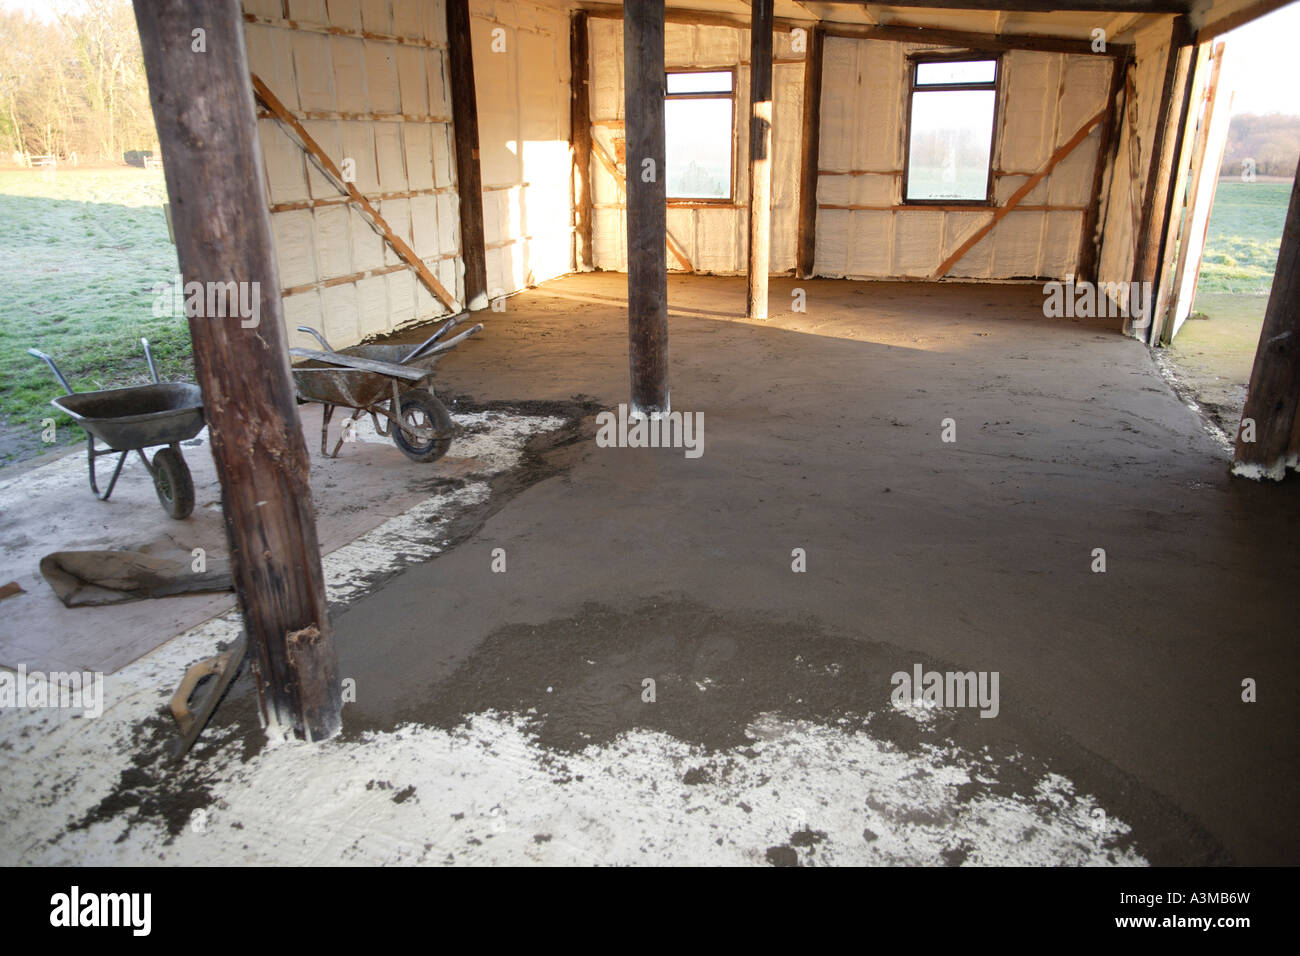 Cement Screed Floor Being Laid Stock Photo 10816704 Alamy